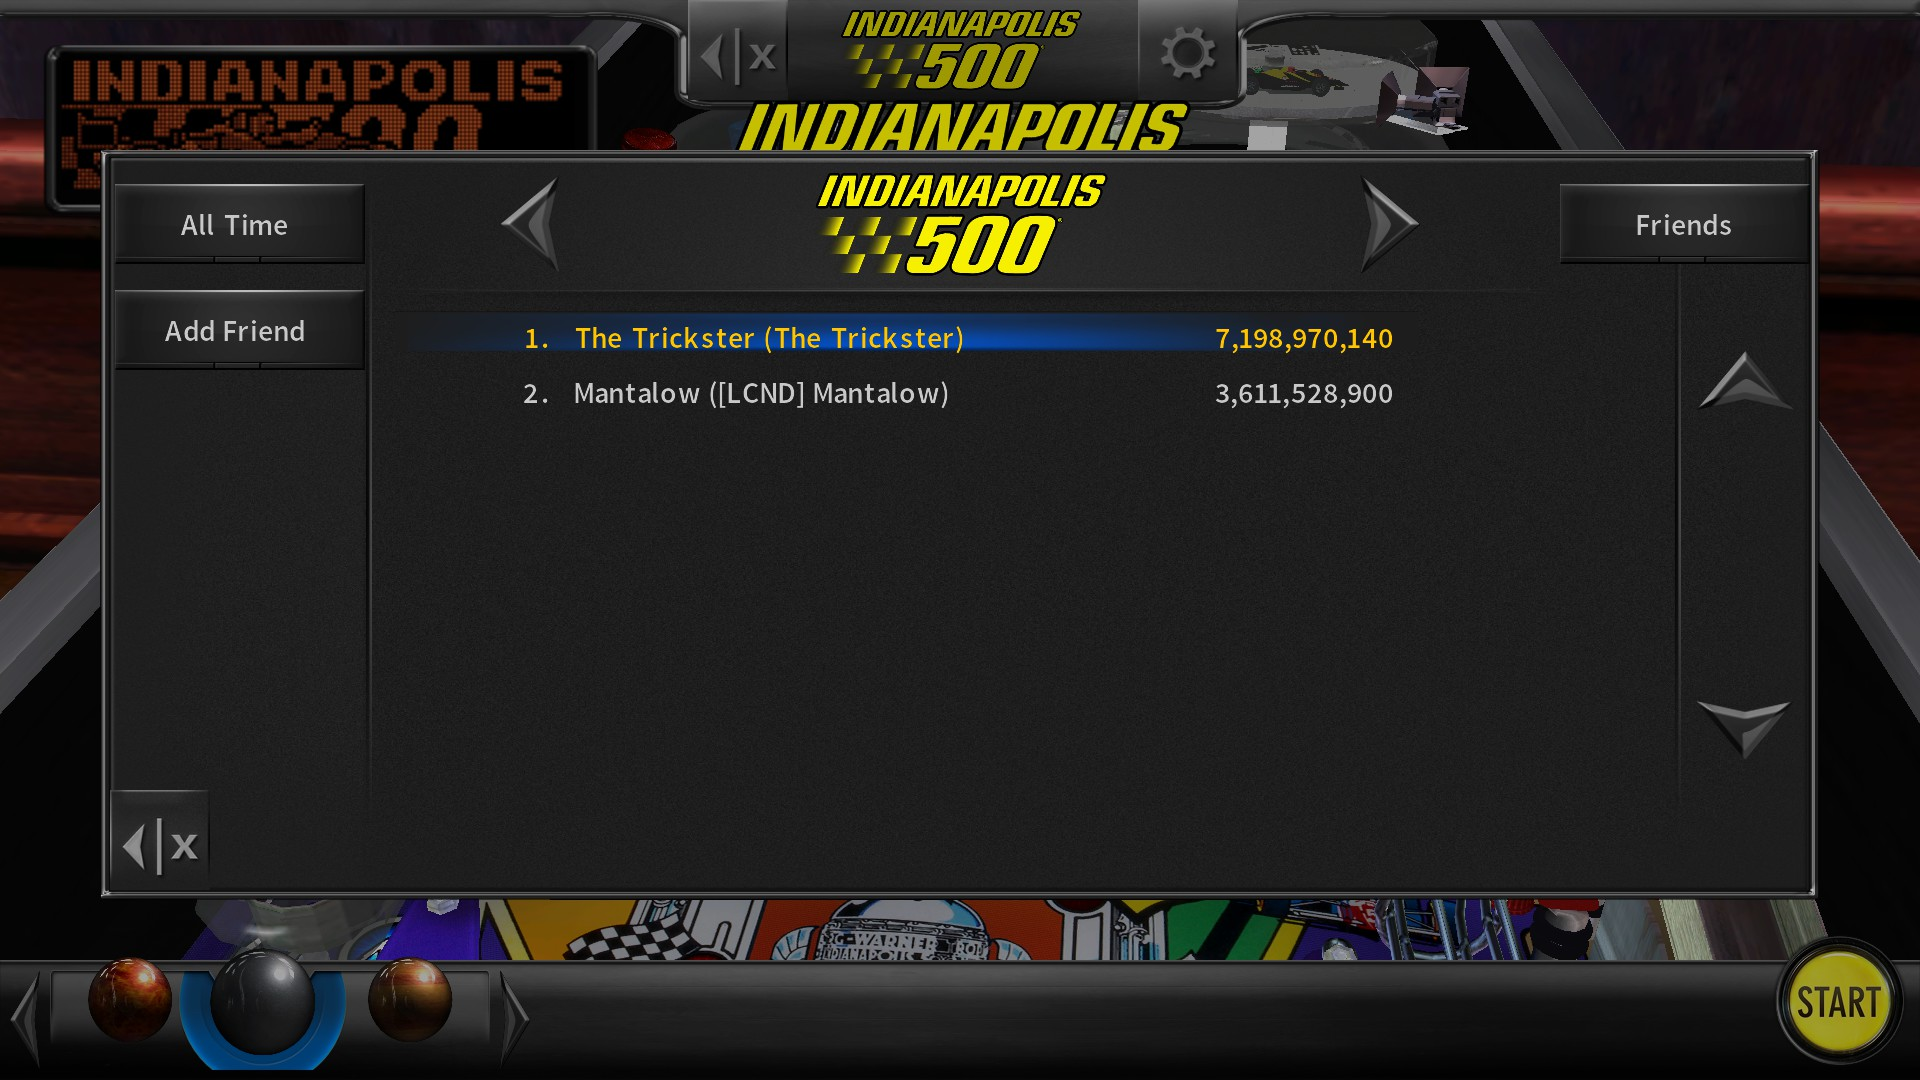 TheTrickster: Pinball Arcade: Indianapolis 500 (PC) 7,198,970,140 points on 2016-07-02 17:18:36